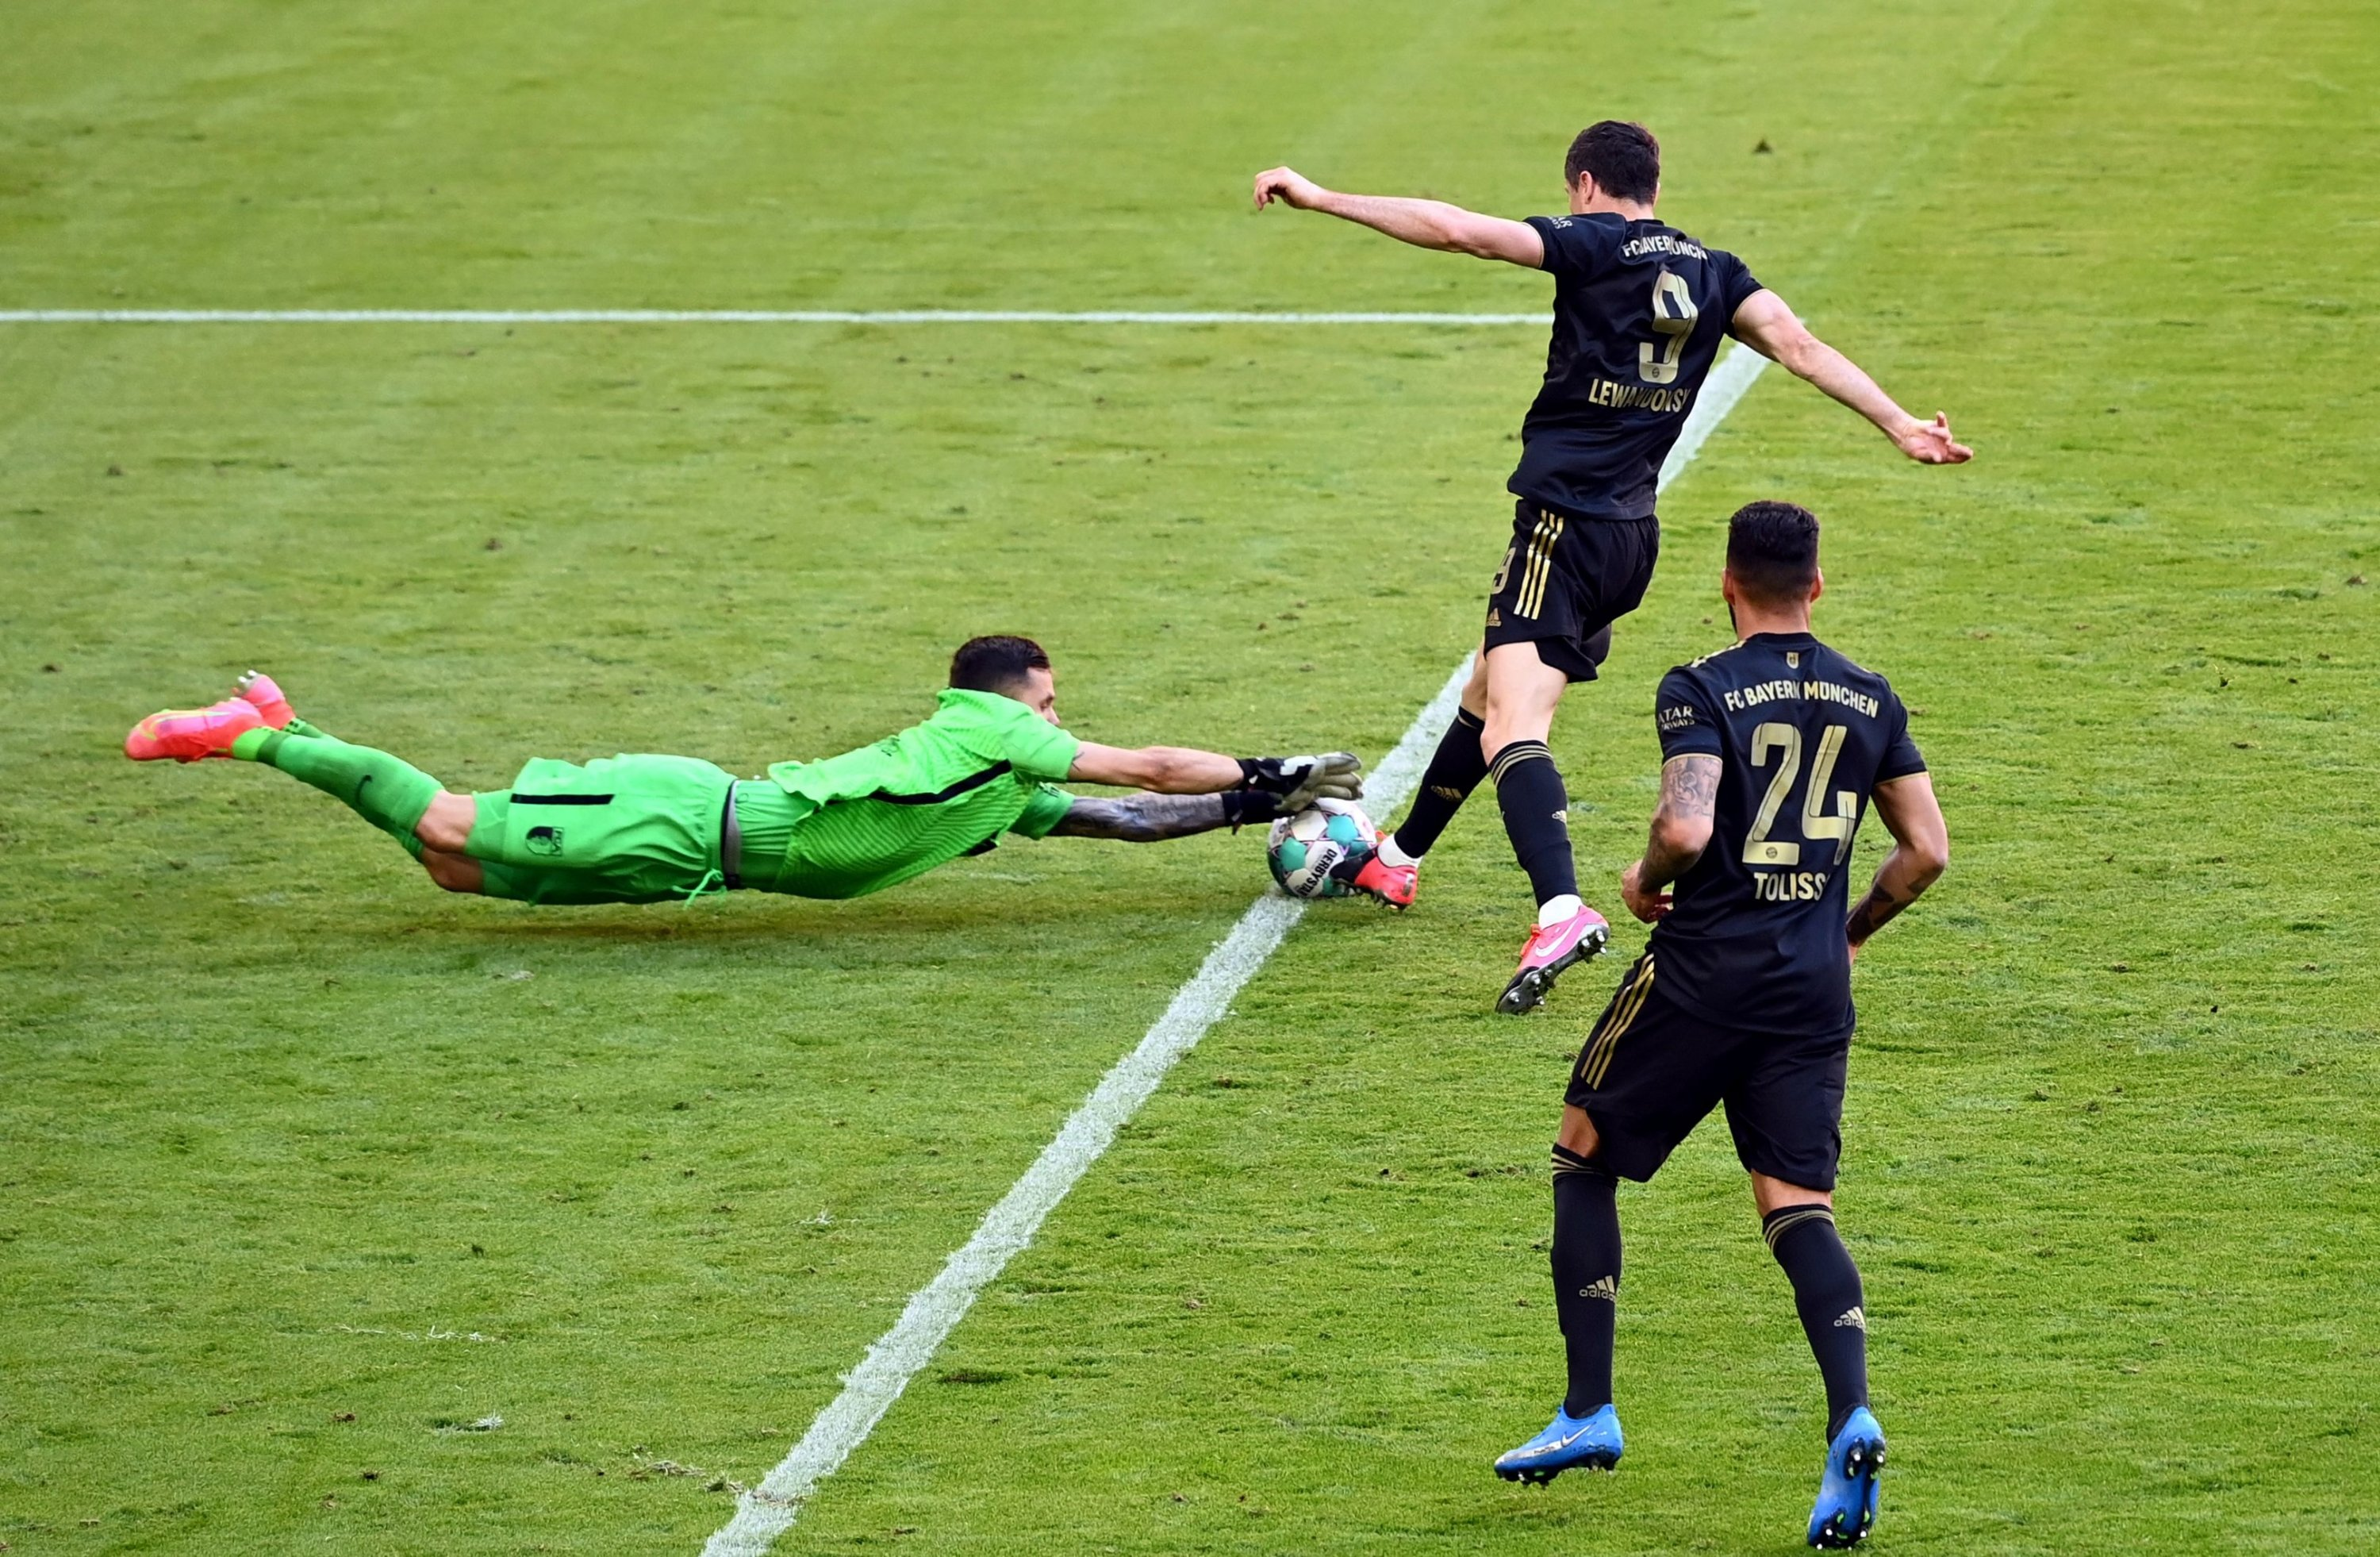 Bayern Munich's Polish forward Robert Lewandowski scores his team's fifth goal 5-2 during a German top division Bundesliga football match against FC Augsburg in at Allianz Arena in Munich, southern Germany, May 22, 2021. (Photo: Sven Hoppe/DFL/Pool via Reuters)